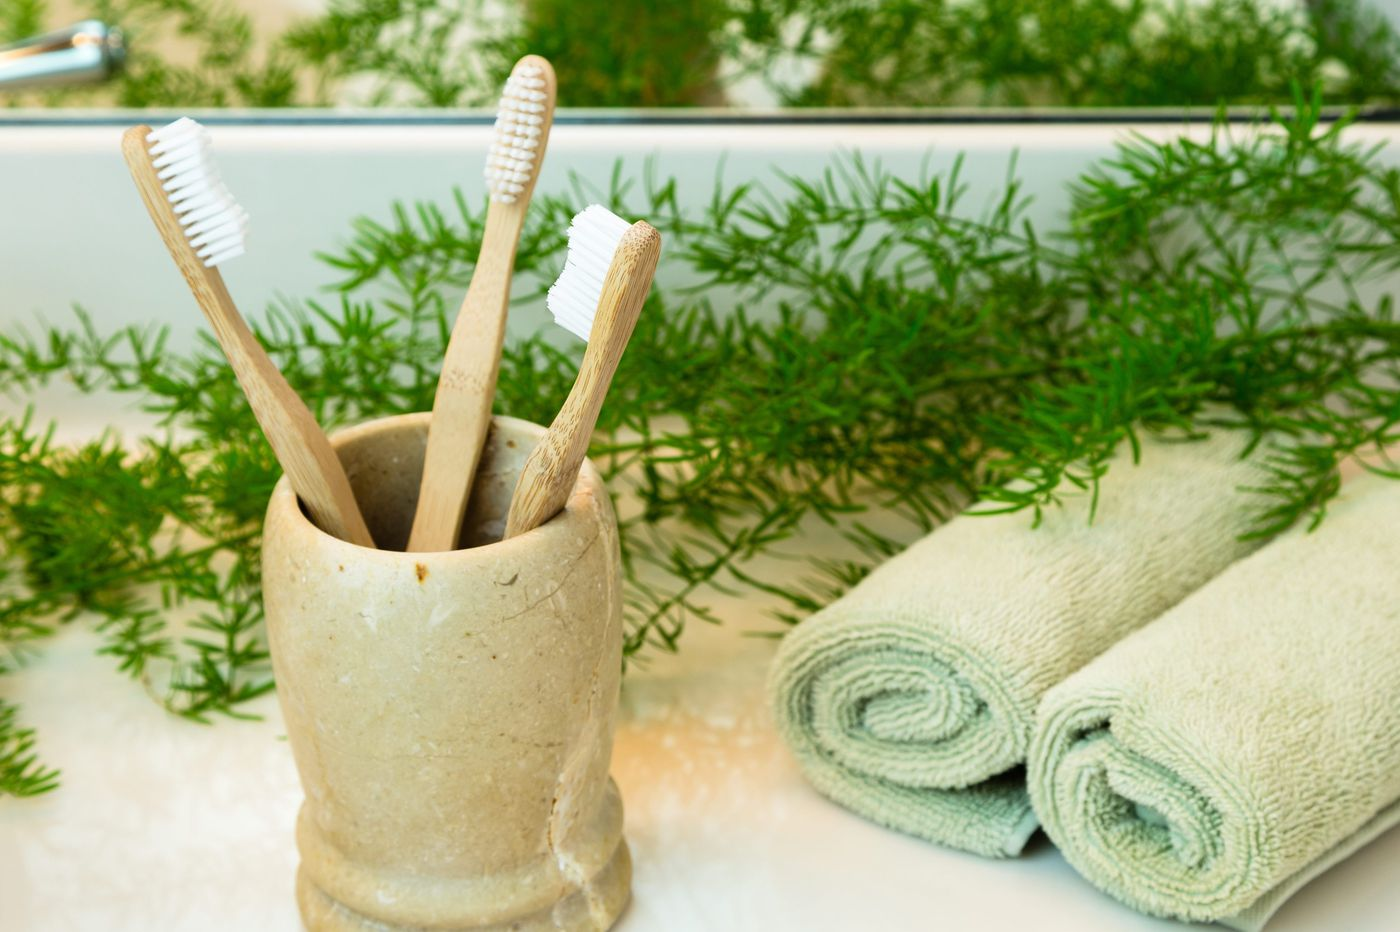 Ask Jennifer Adams: How to store your toothbrushes?